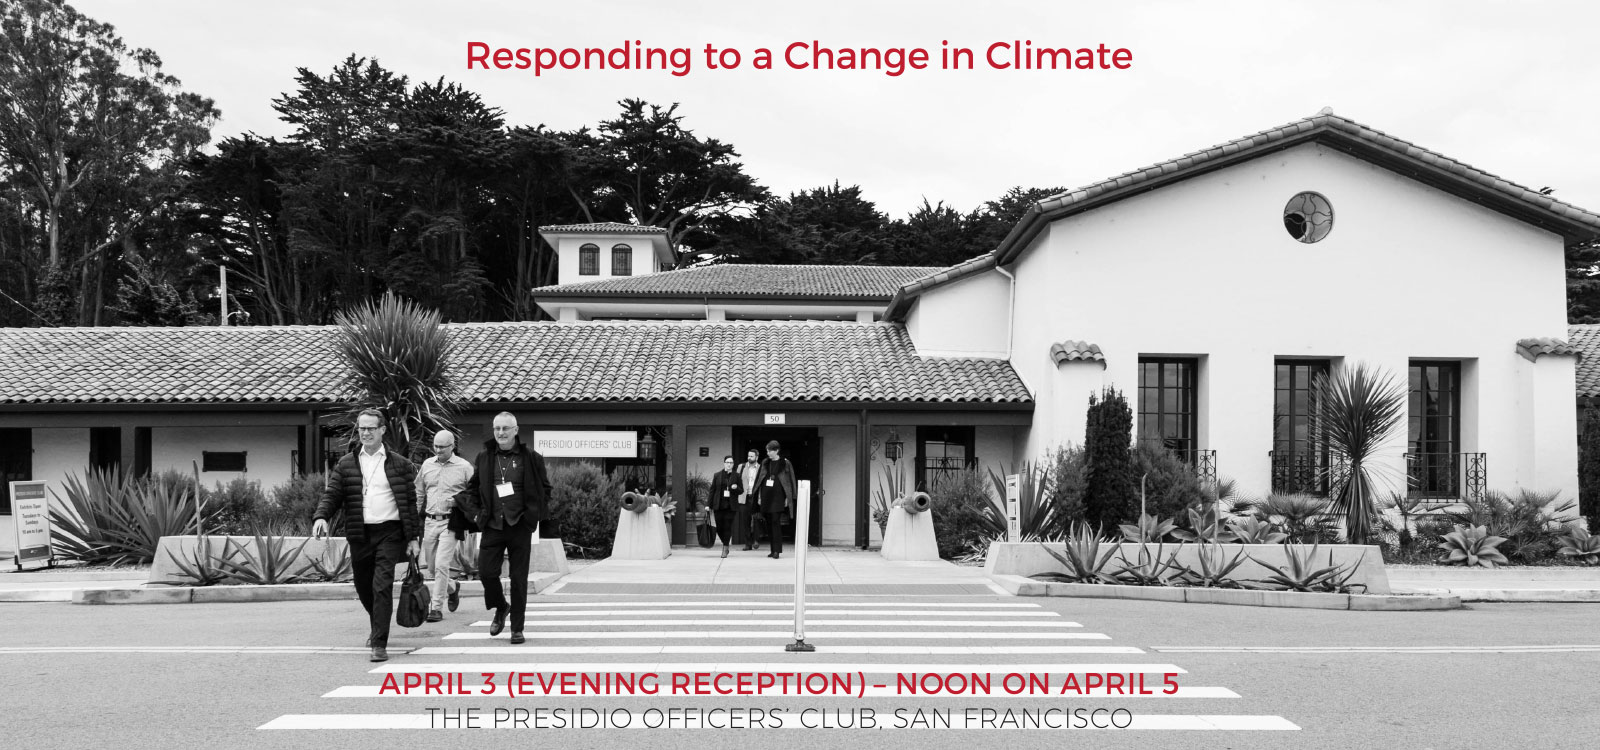 Design Colloquium 2019 – Responding to a Change in Climate